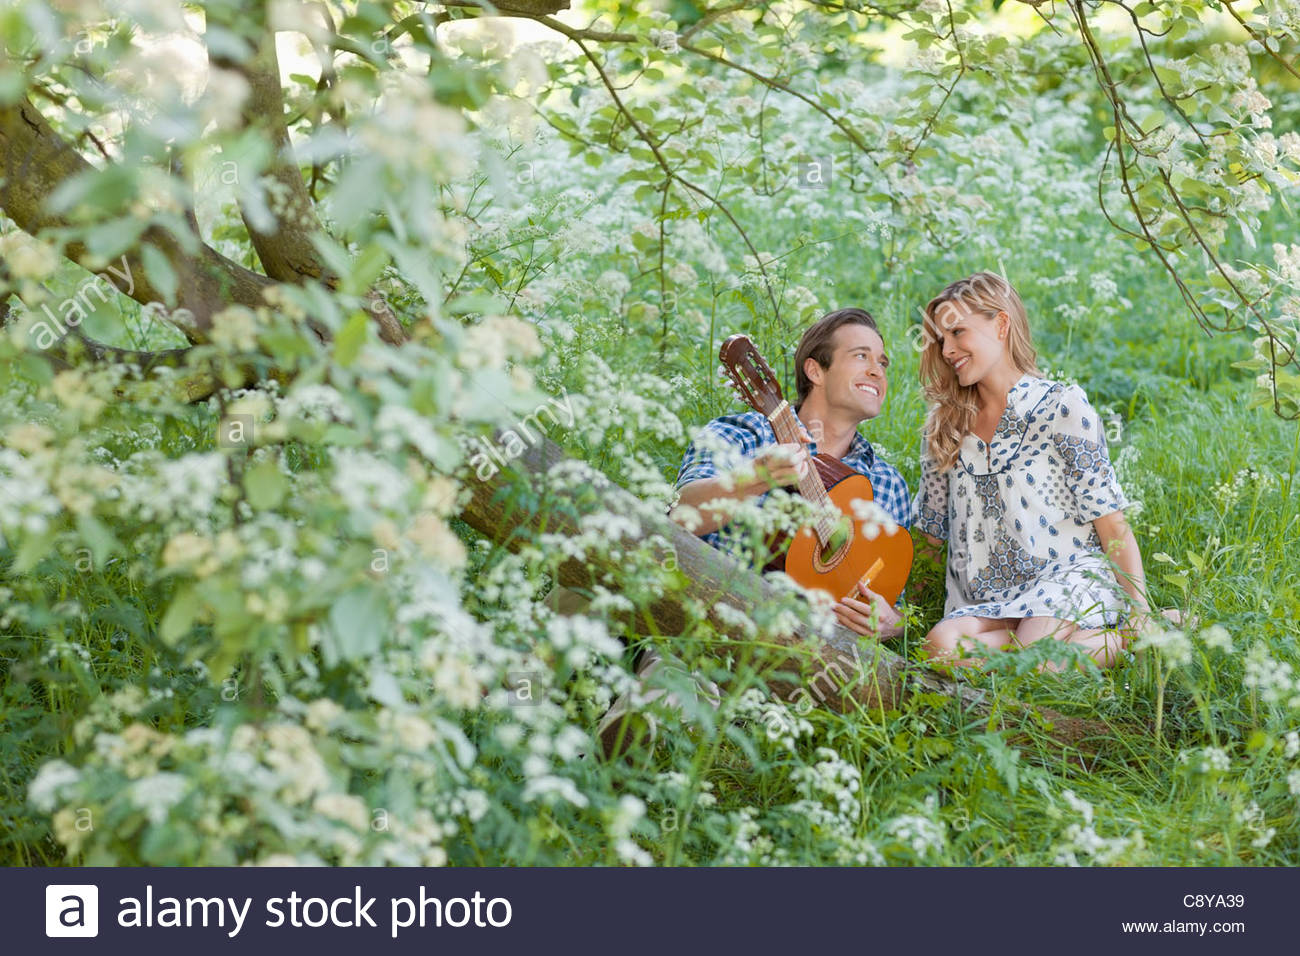 Man playing guitar for girlfriend in forest Photo Stock